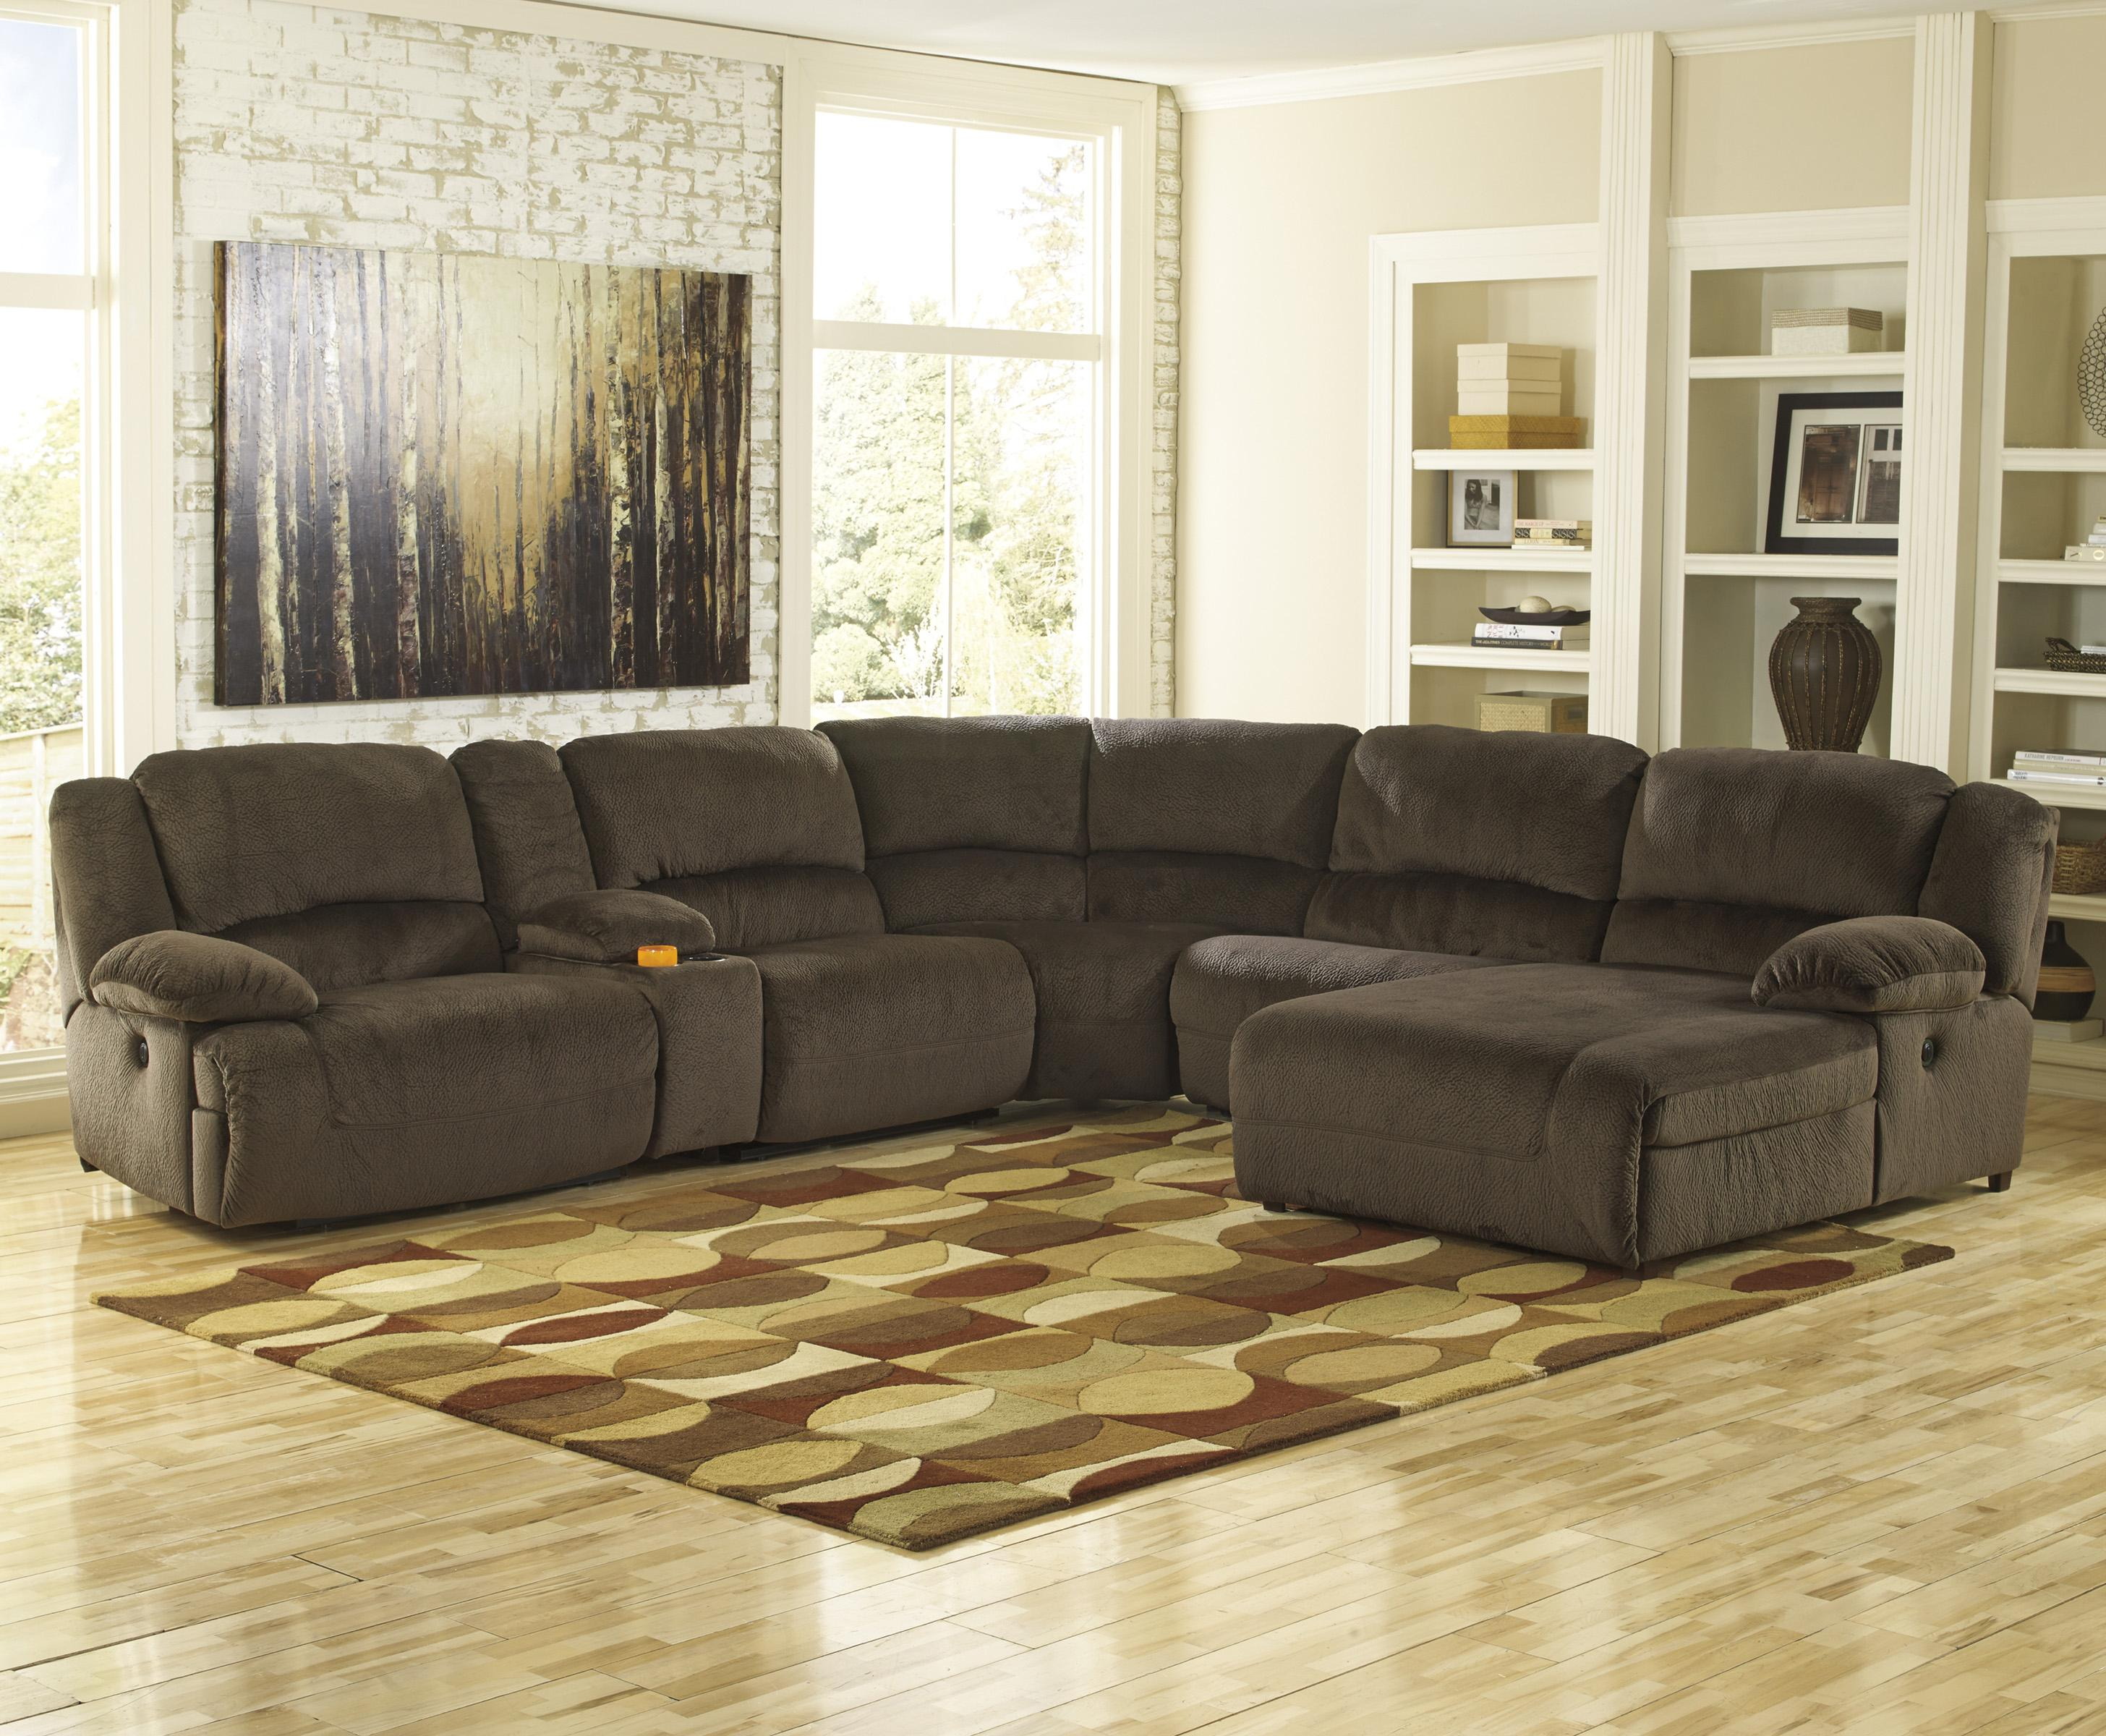 Signature Design by Ashley Toletta - Chocolate Power Recl. Sectional w/ Console & Chaise - Item Number: 5670158+57+19+77+46+97